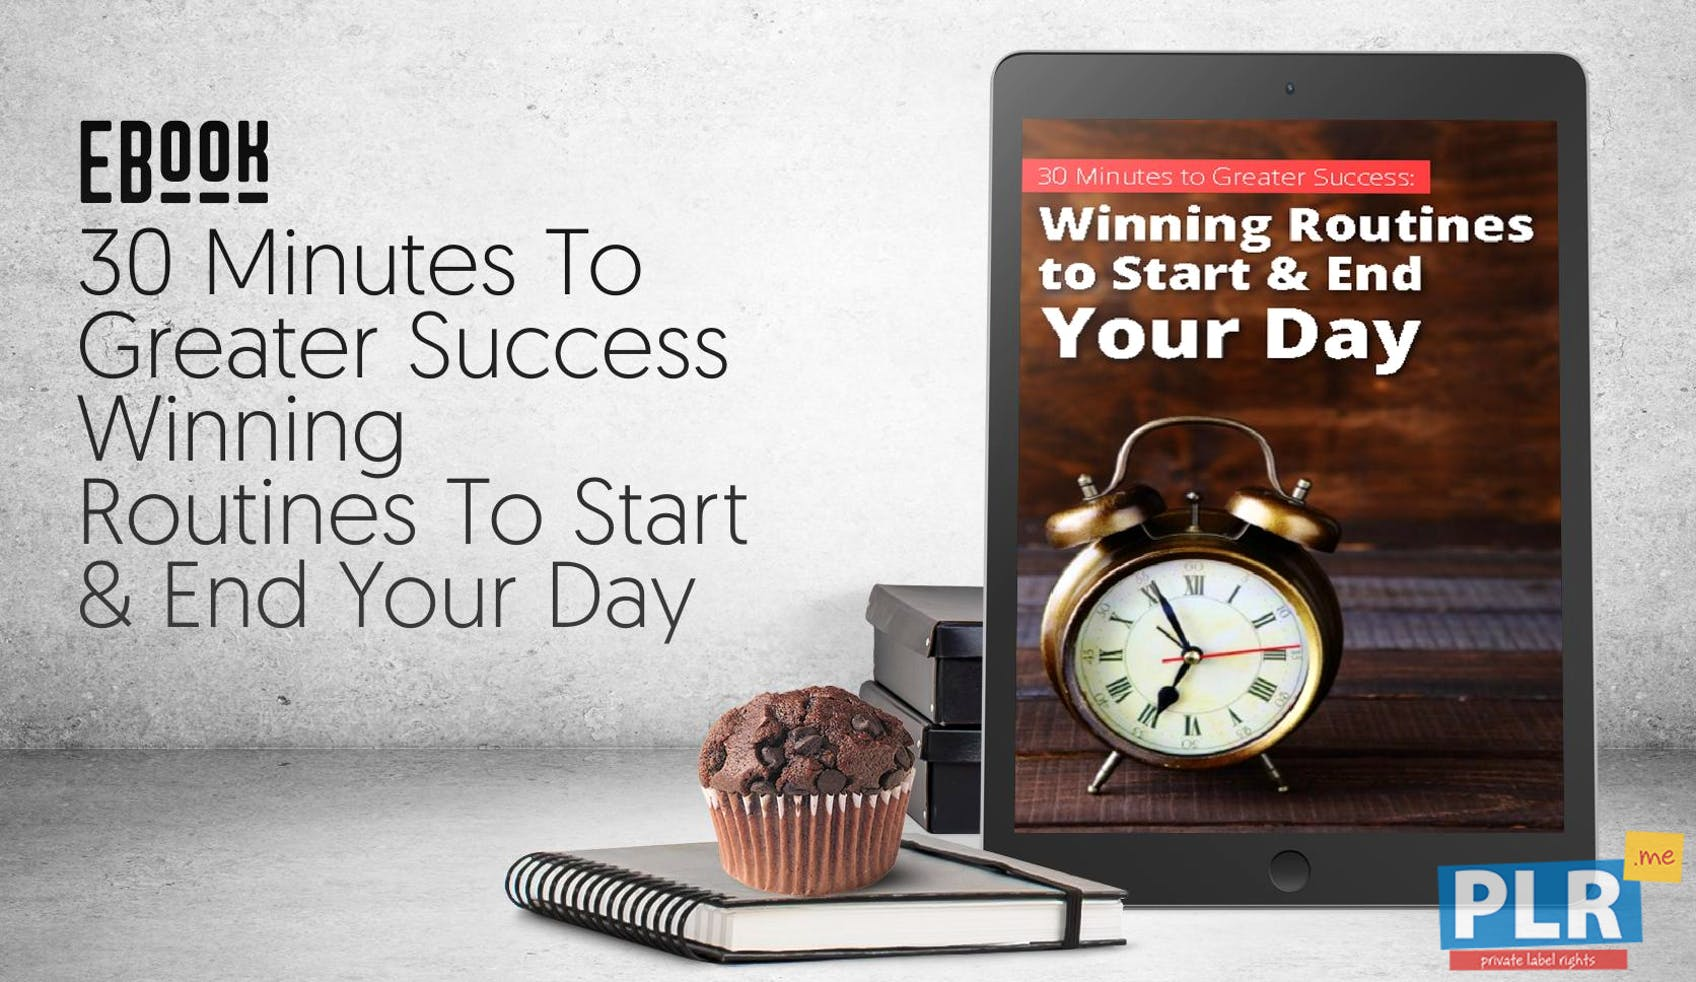 30 Minutes To Greater Success Winning Routines To Start & End Your Day